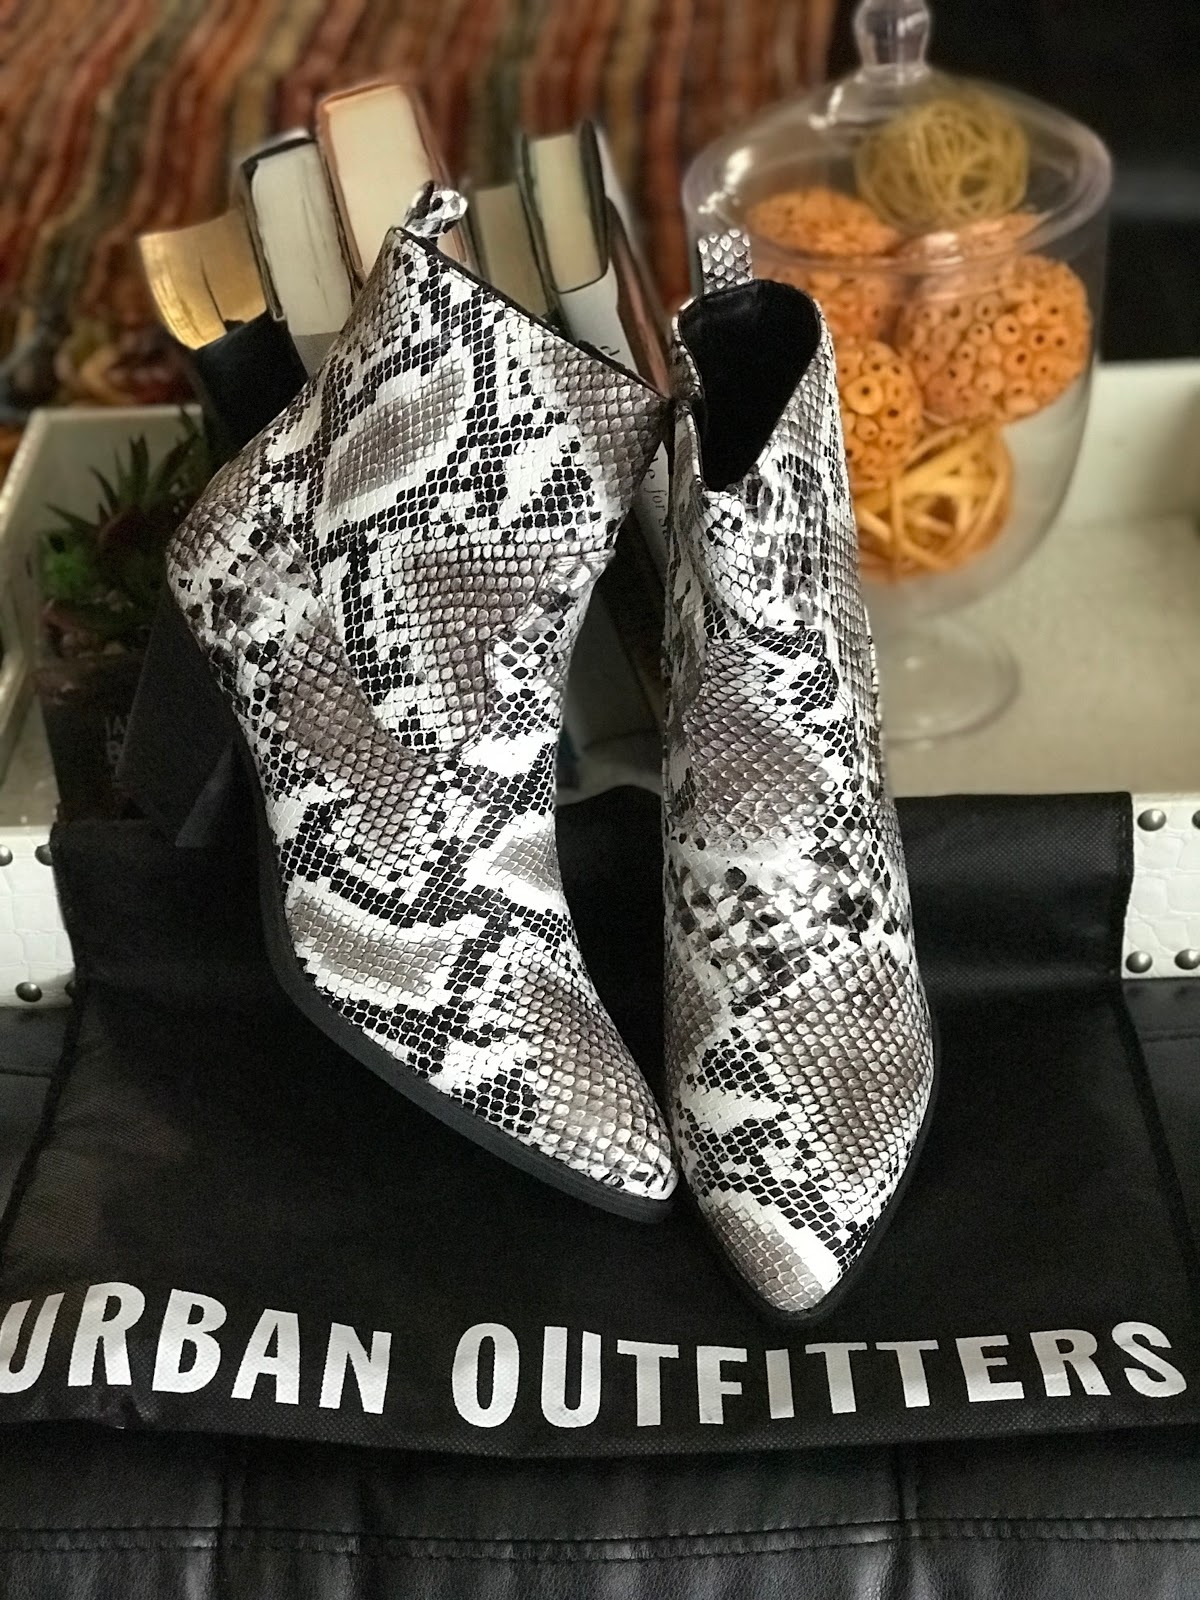 Image: Snakeskin boots Tangie Bell Bought from Catos Fashion to share on her blog Bits and Babbles